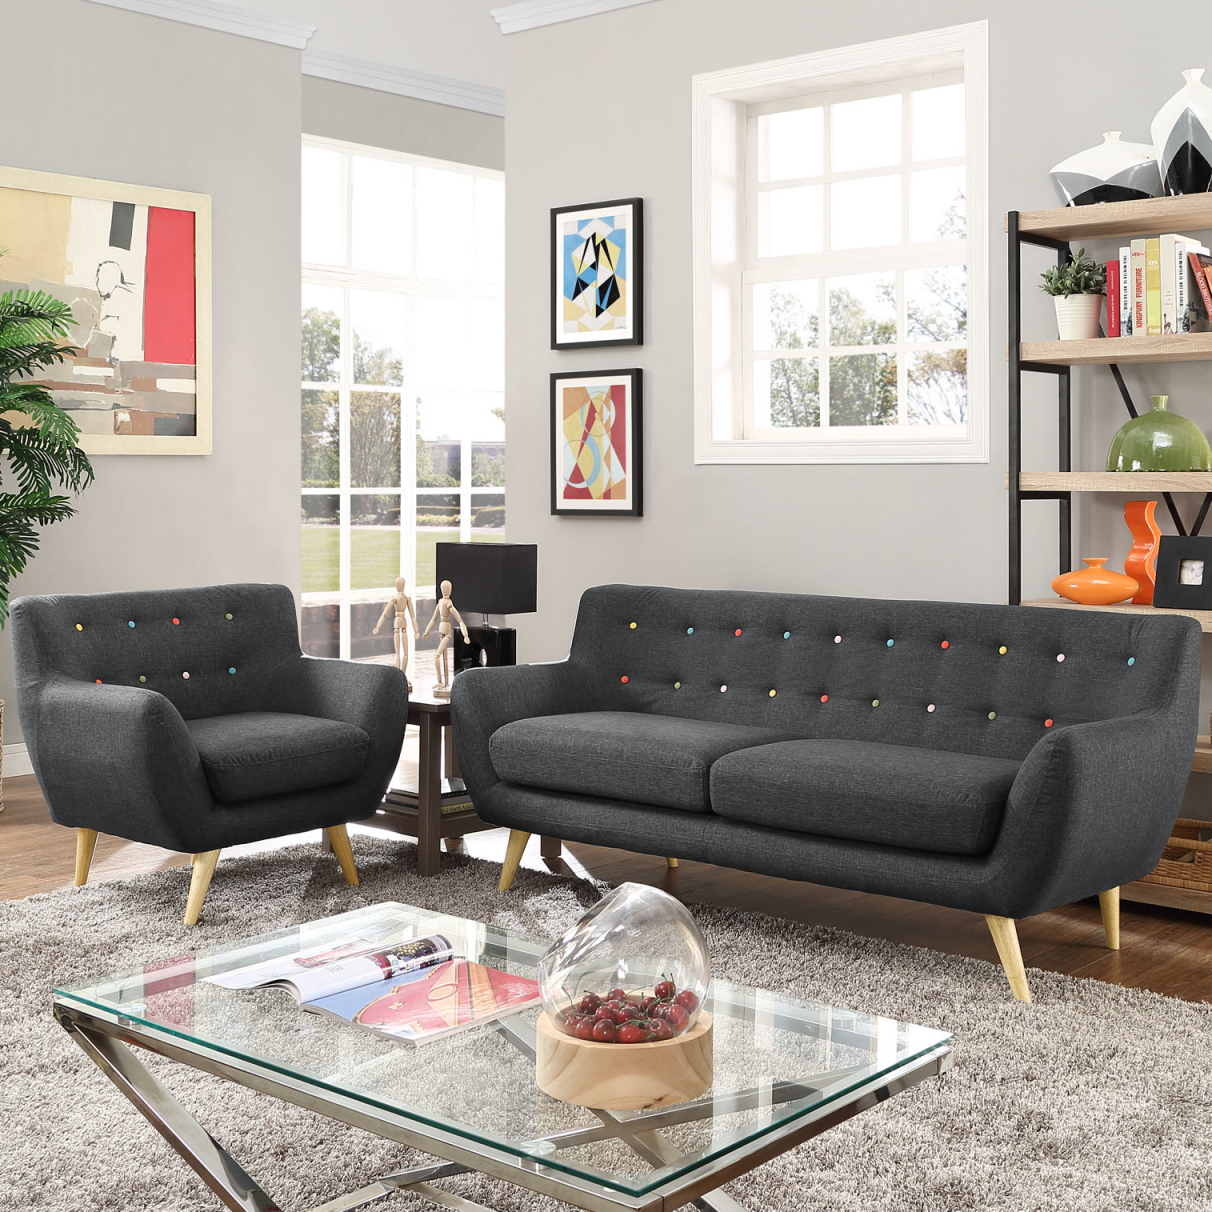 Unique Living Room Furniture Sets Awesome Decors